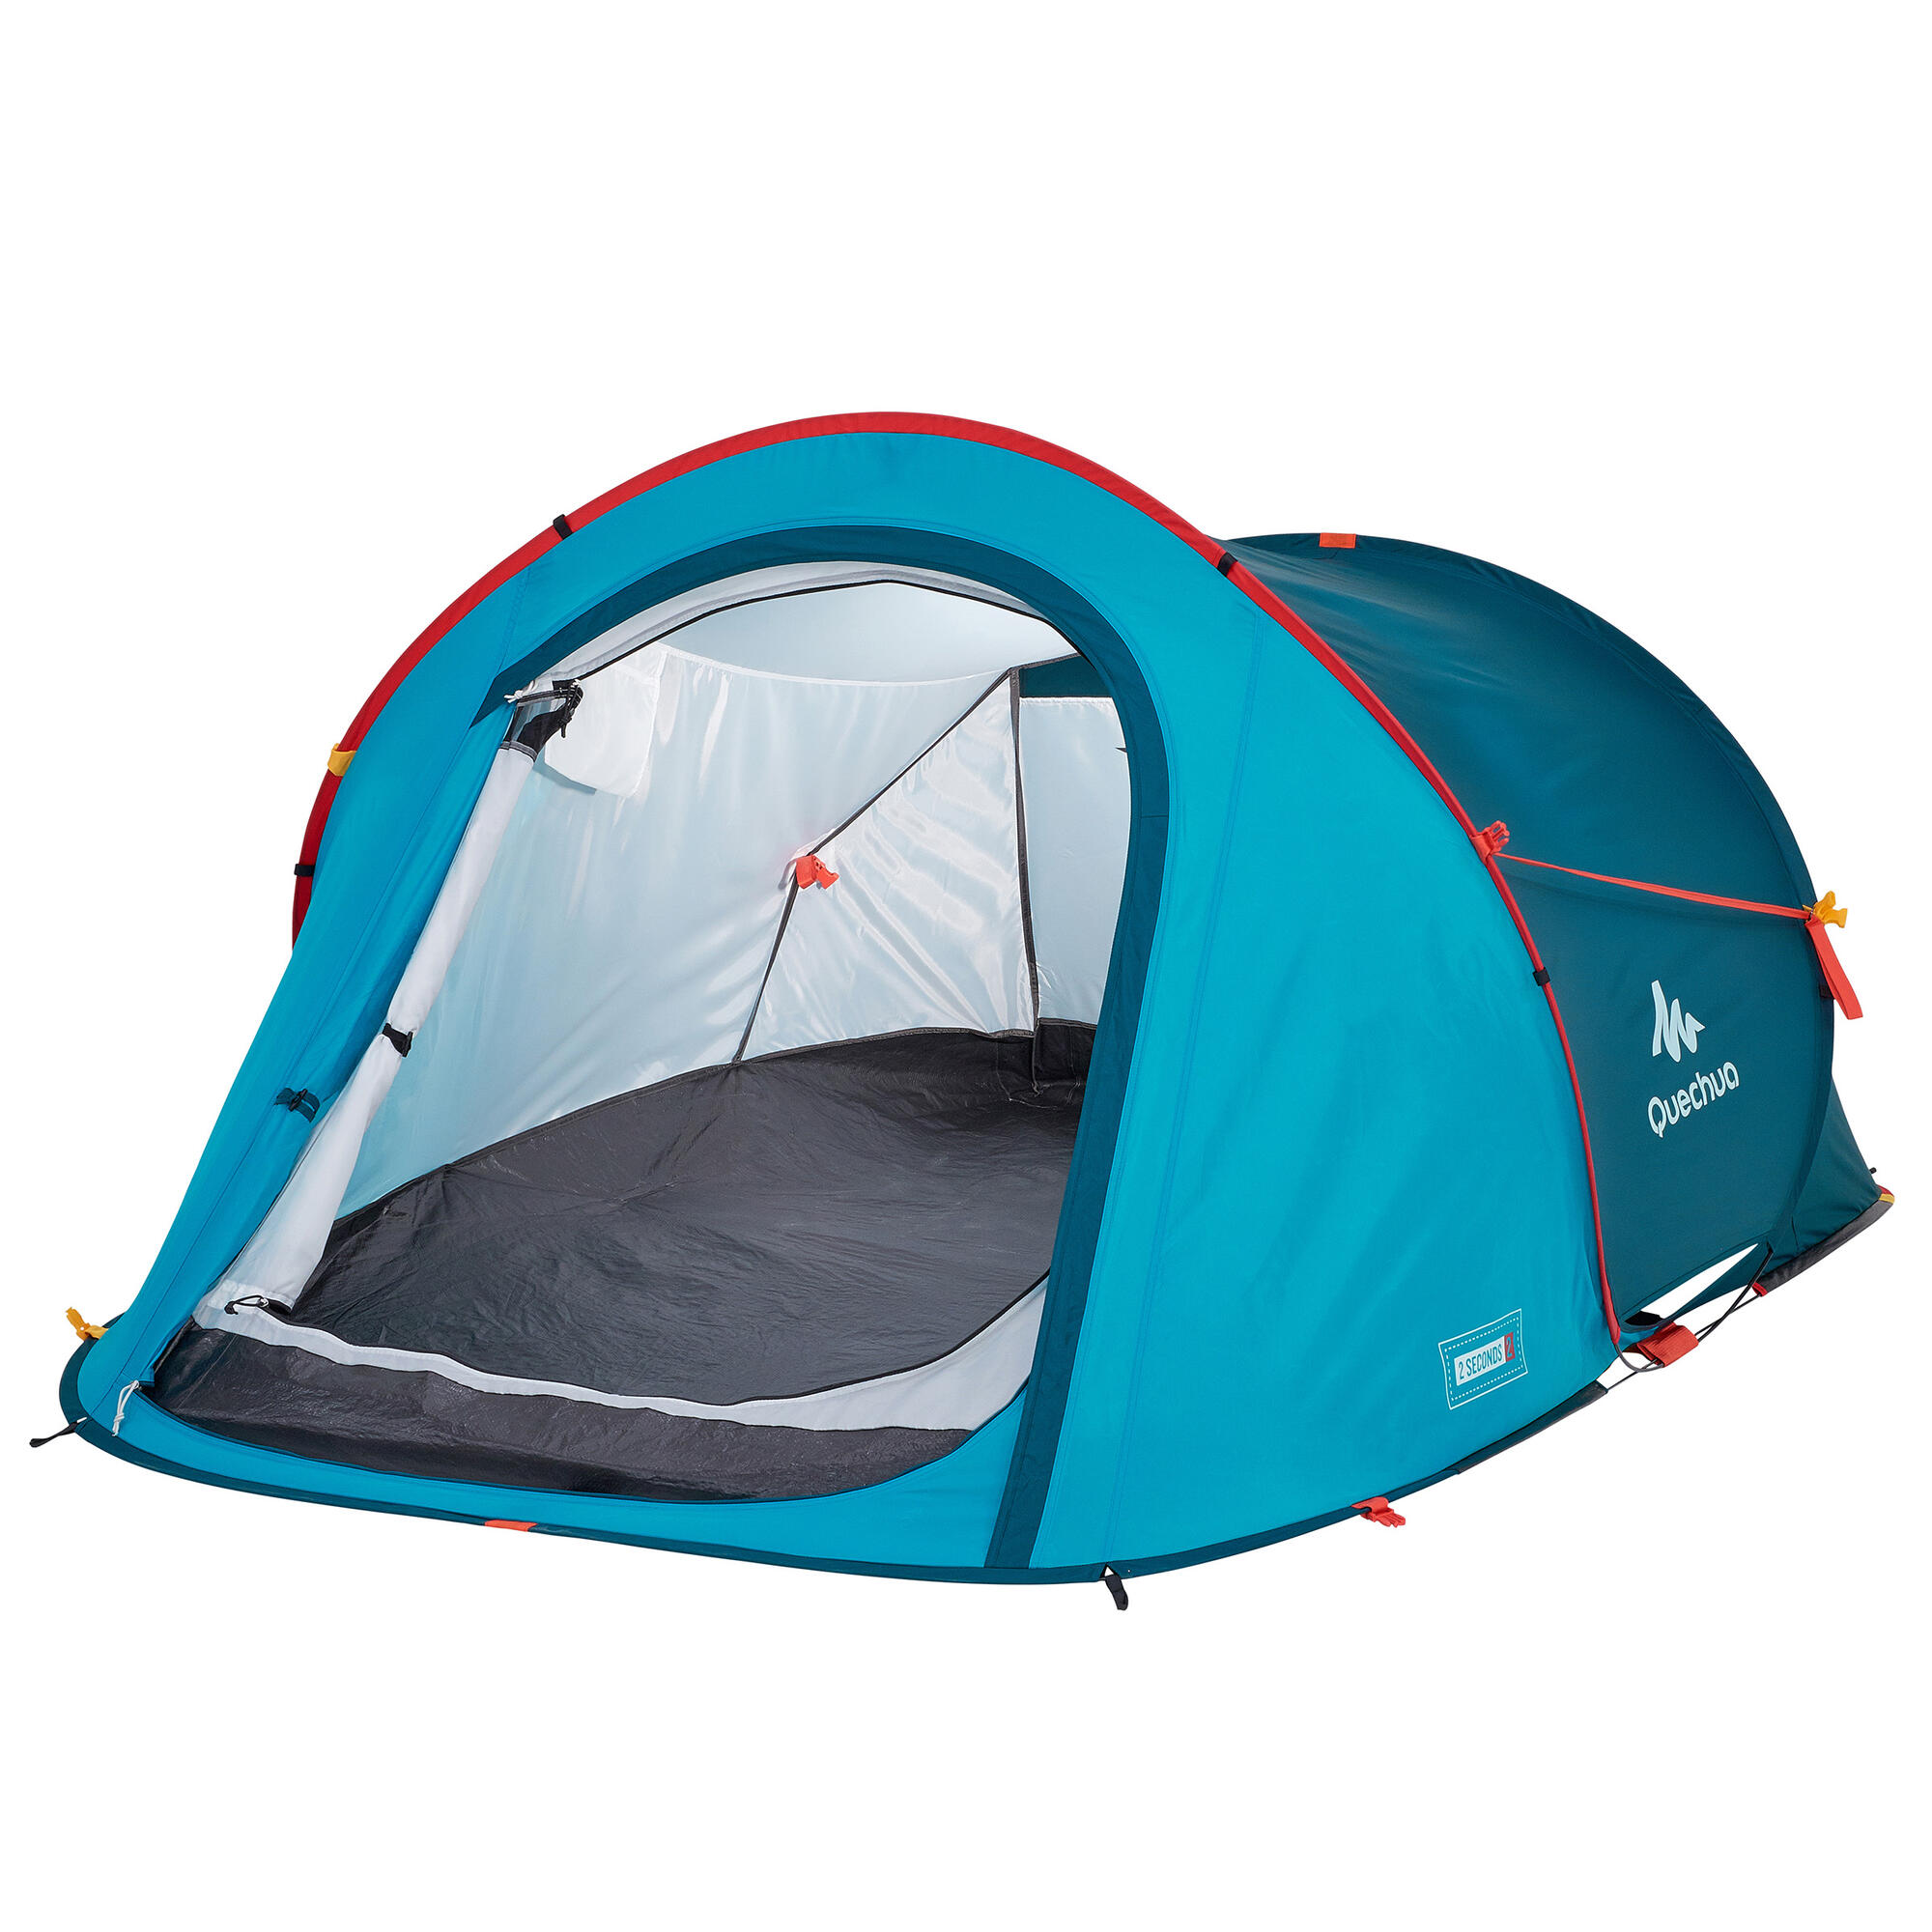 2 Seconds 2-Person Camping Tent